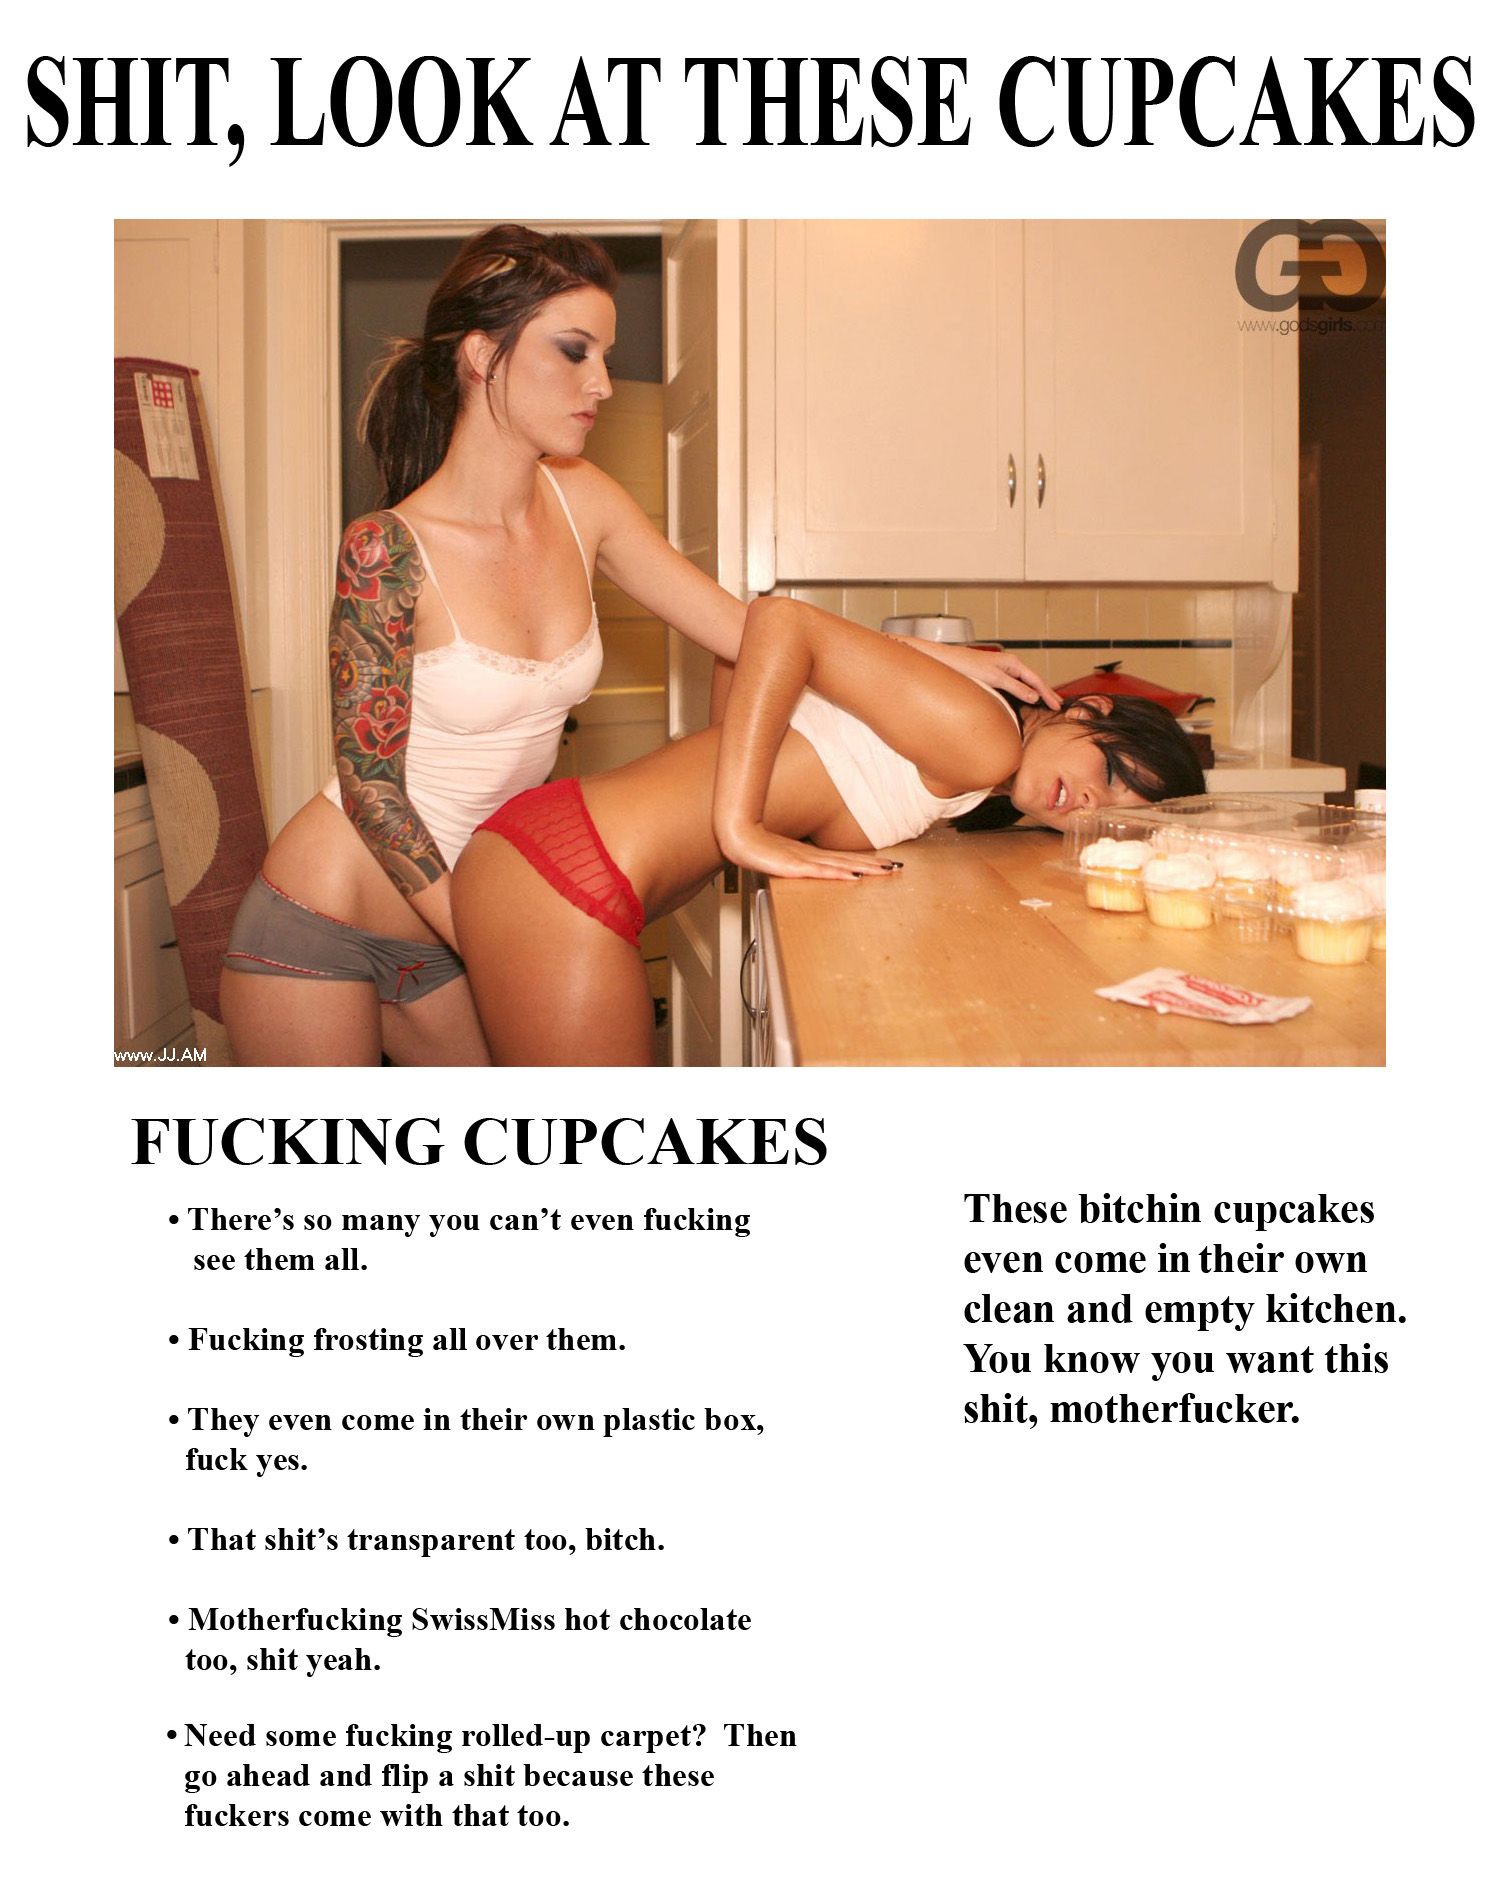 GaMerZ.File.Viewer - Viewing Image - cupcakes.jpg